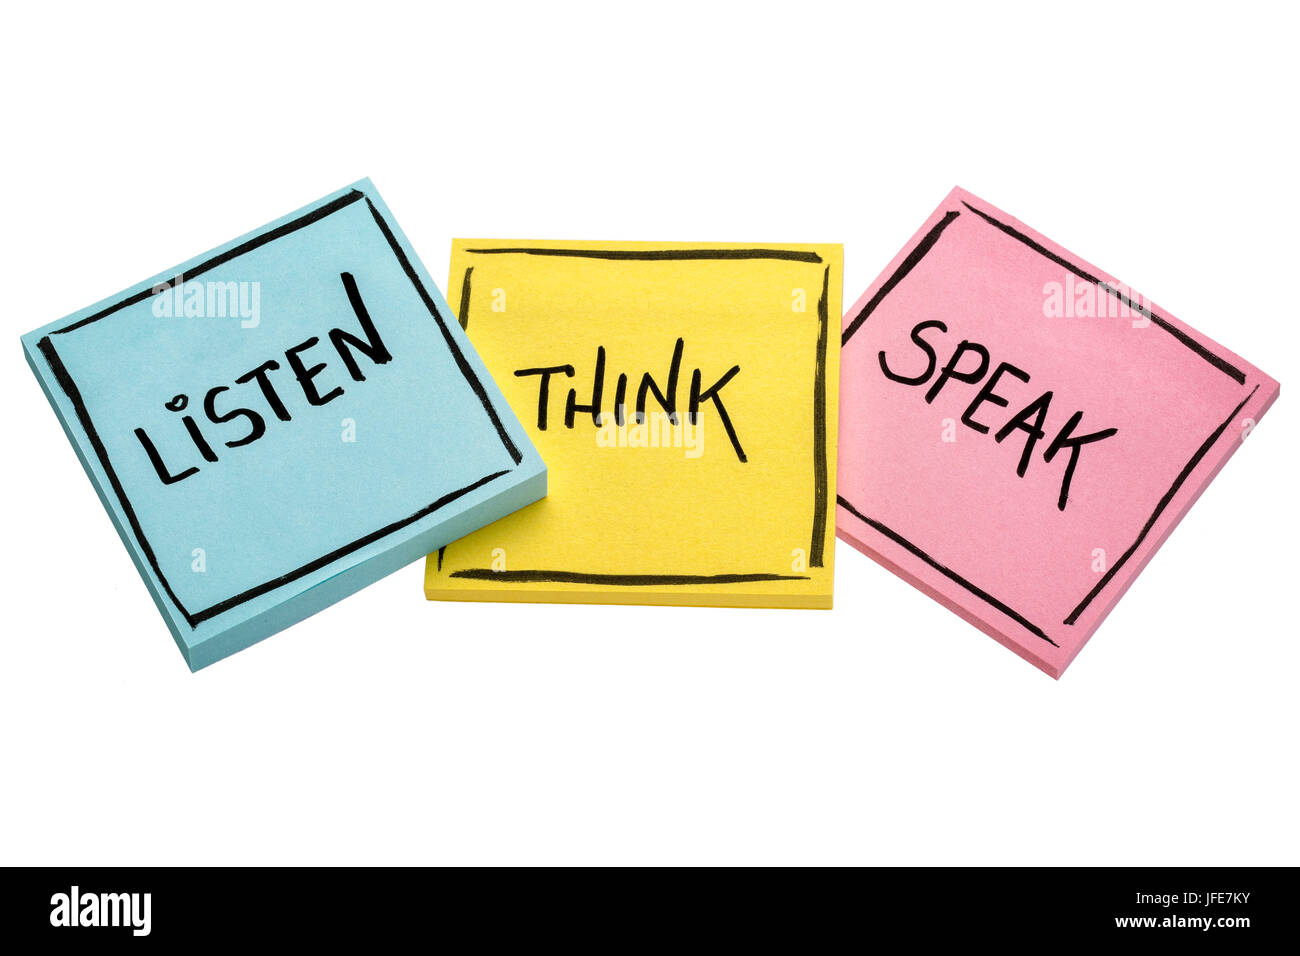 listen, think, speak - communication concept - handwriting in black ink on isolated sticky notes - Stock Image